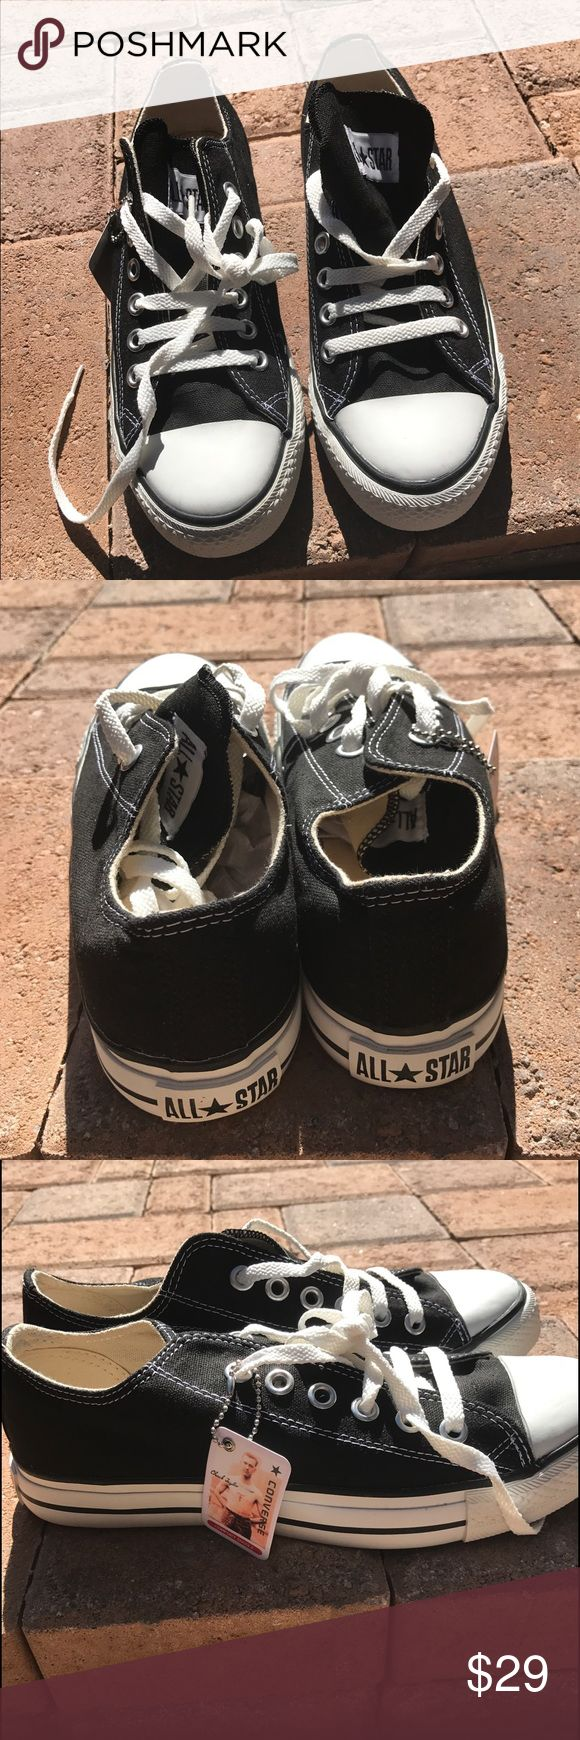 Converse All Star Oxford Black Chuck Taylor Authentic Converse All Star Oxford Chuck Taylor Black Women's US 10, BRAND NEW NO BOX. Price Firm, No offers Converse Shoes